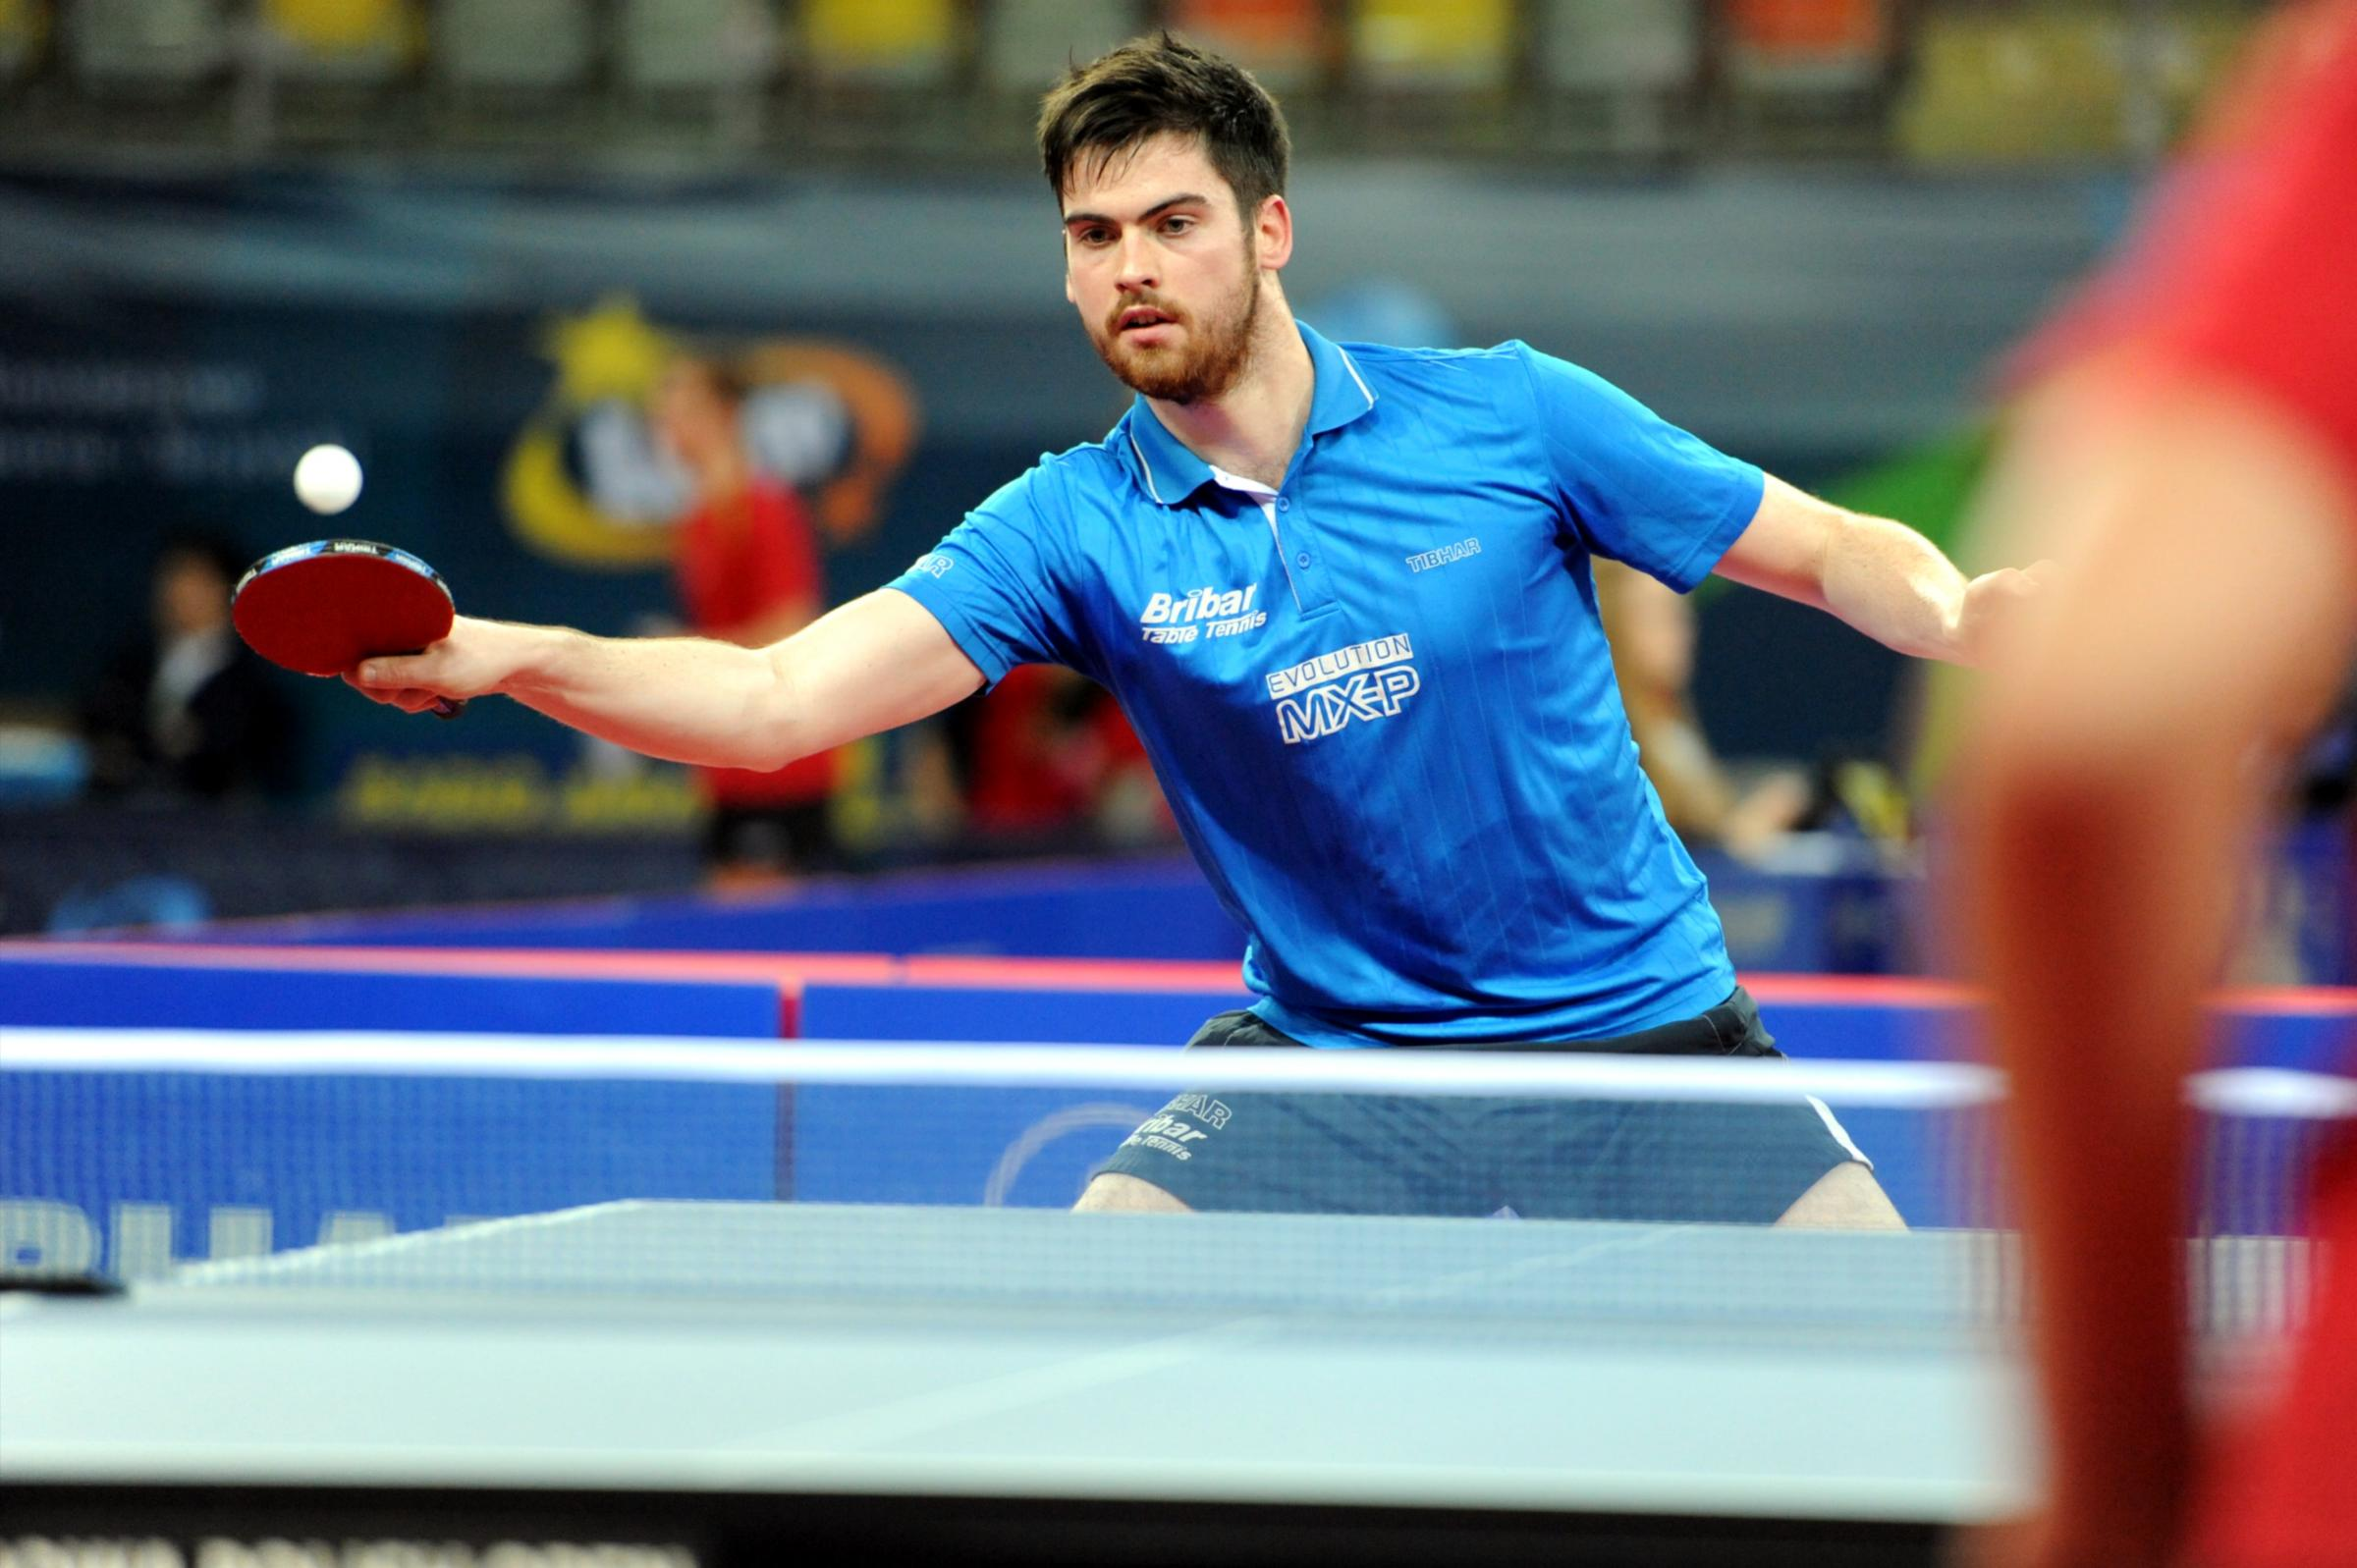 TABLE TENNIS: Rownhams' David McBeath in Commonwealth Games squad